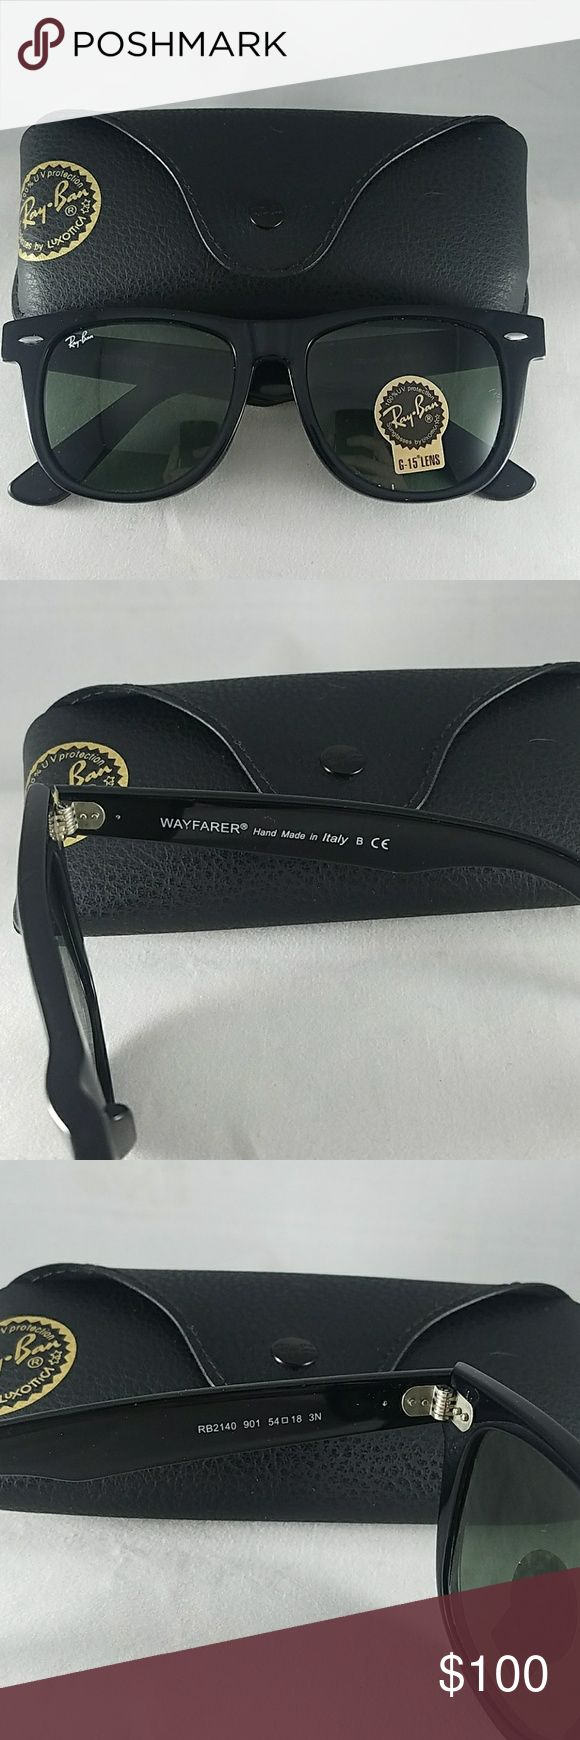 New Ray-ban Wayfarer Black Original | G-15 Lens 100% Authentic Guaranteed or your money back! Each order ships with Ray-Bans packing slip to prove authenticity when reselling online.   Sizes:  50mm 52mm 54mm   Color: Black frame, Dark Green G-15 Lens  Includes all documentation, box, cleaning cloth, case, and sunglasses! Ray-Ban Accessories Sunglasses